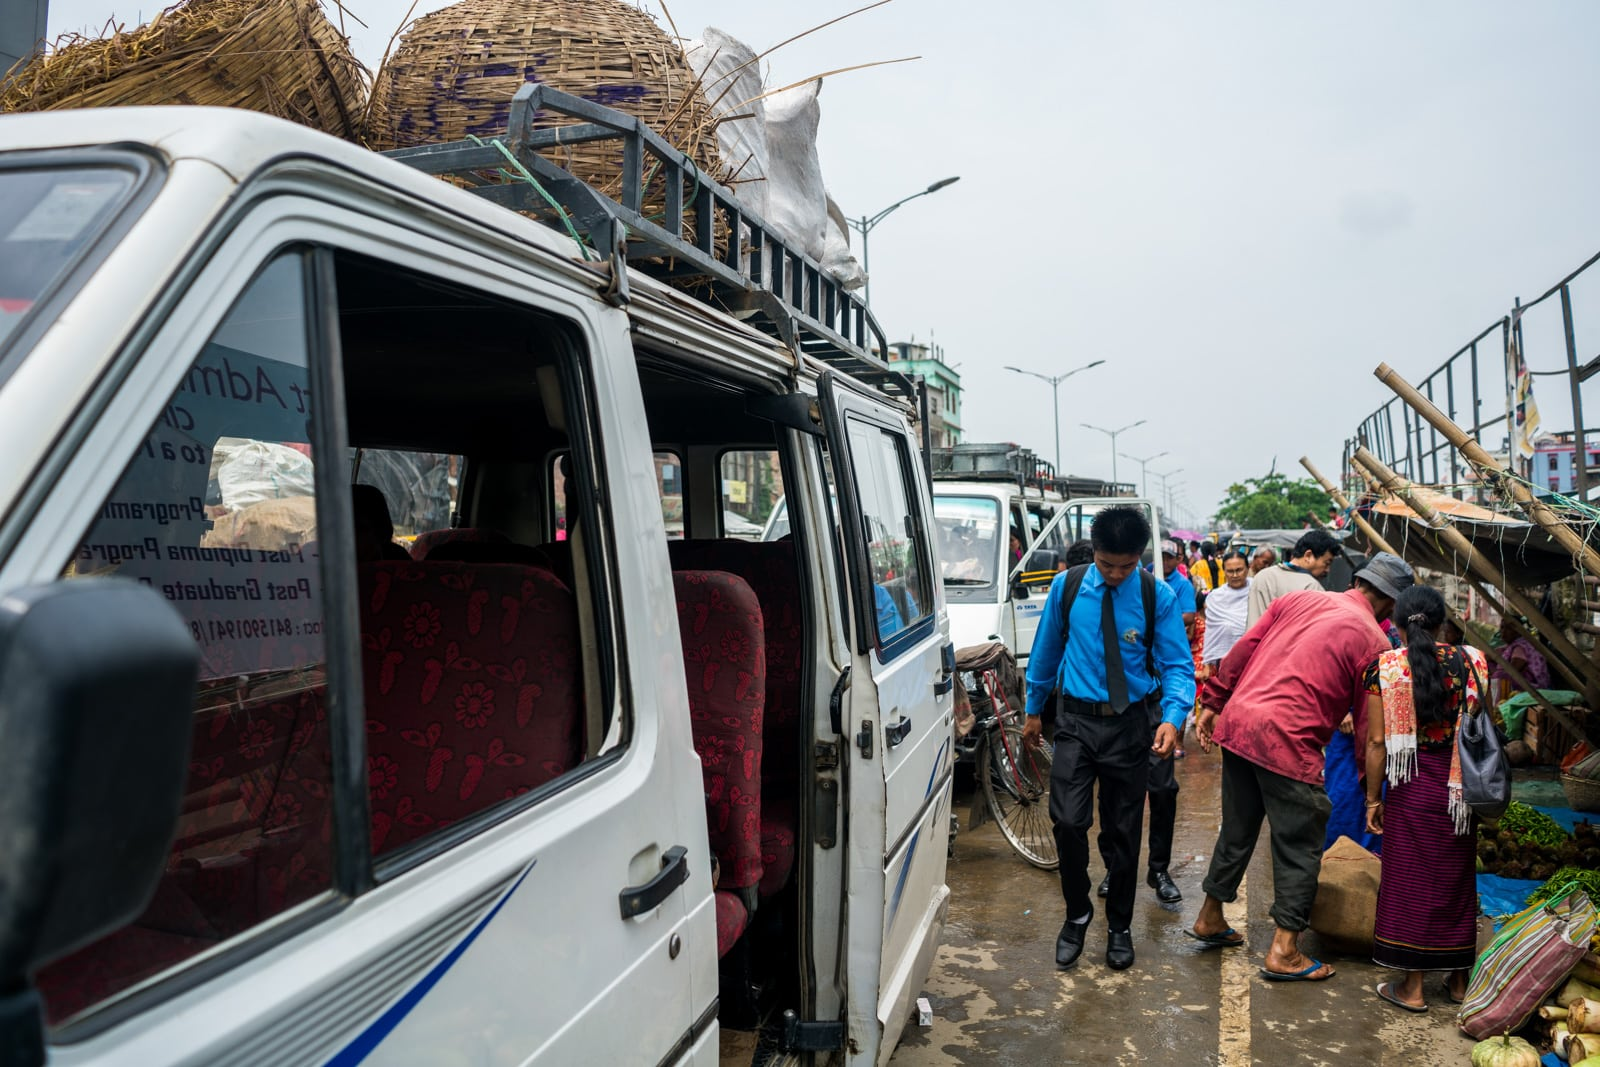 How to get from Imphal to Loktak Lake in Manipur, India - The line of shared taxis to Moirang on Loktak Lake - Lost With Purpose travel blog